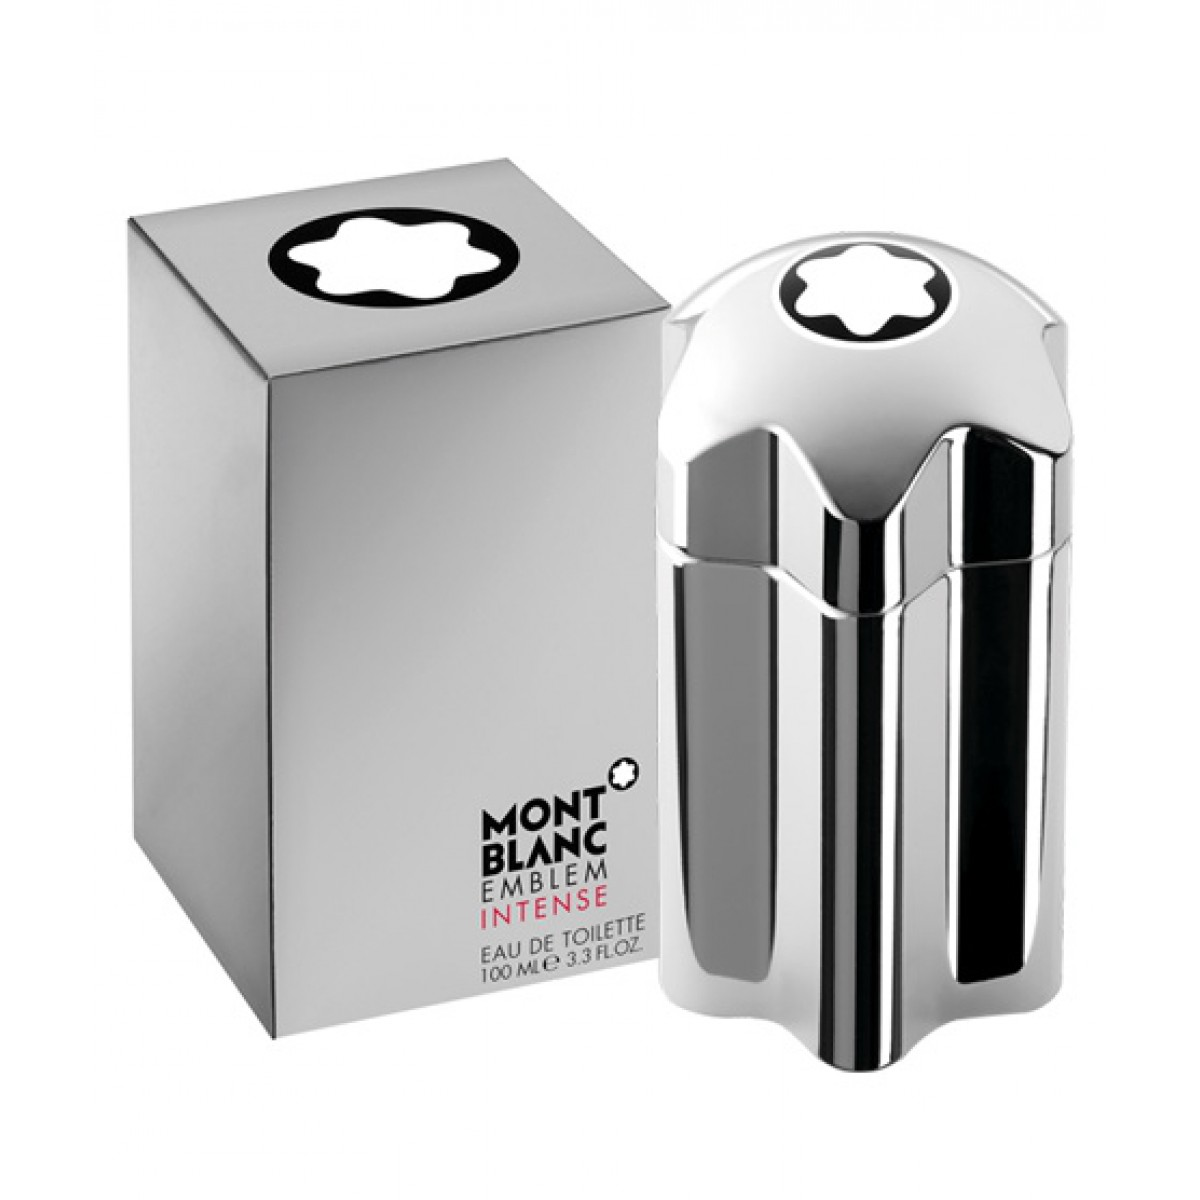 cc459acac28 Montblanc Emblem Intense EDT Price in Pakistan-homeshopping